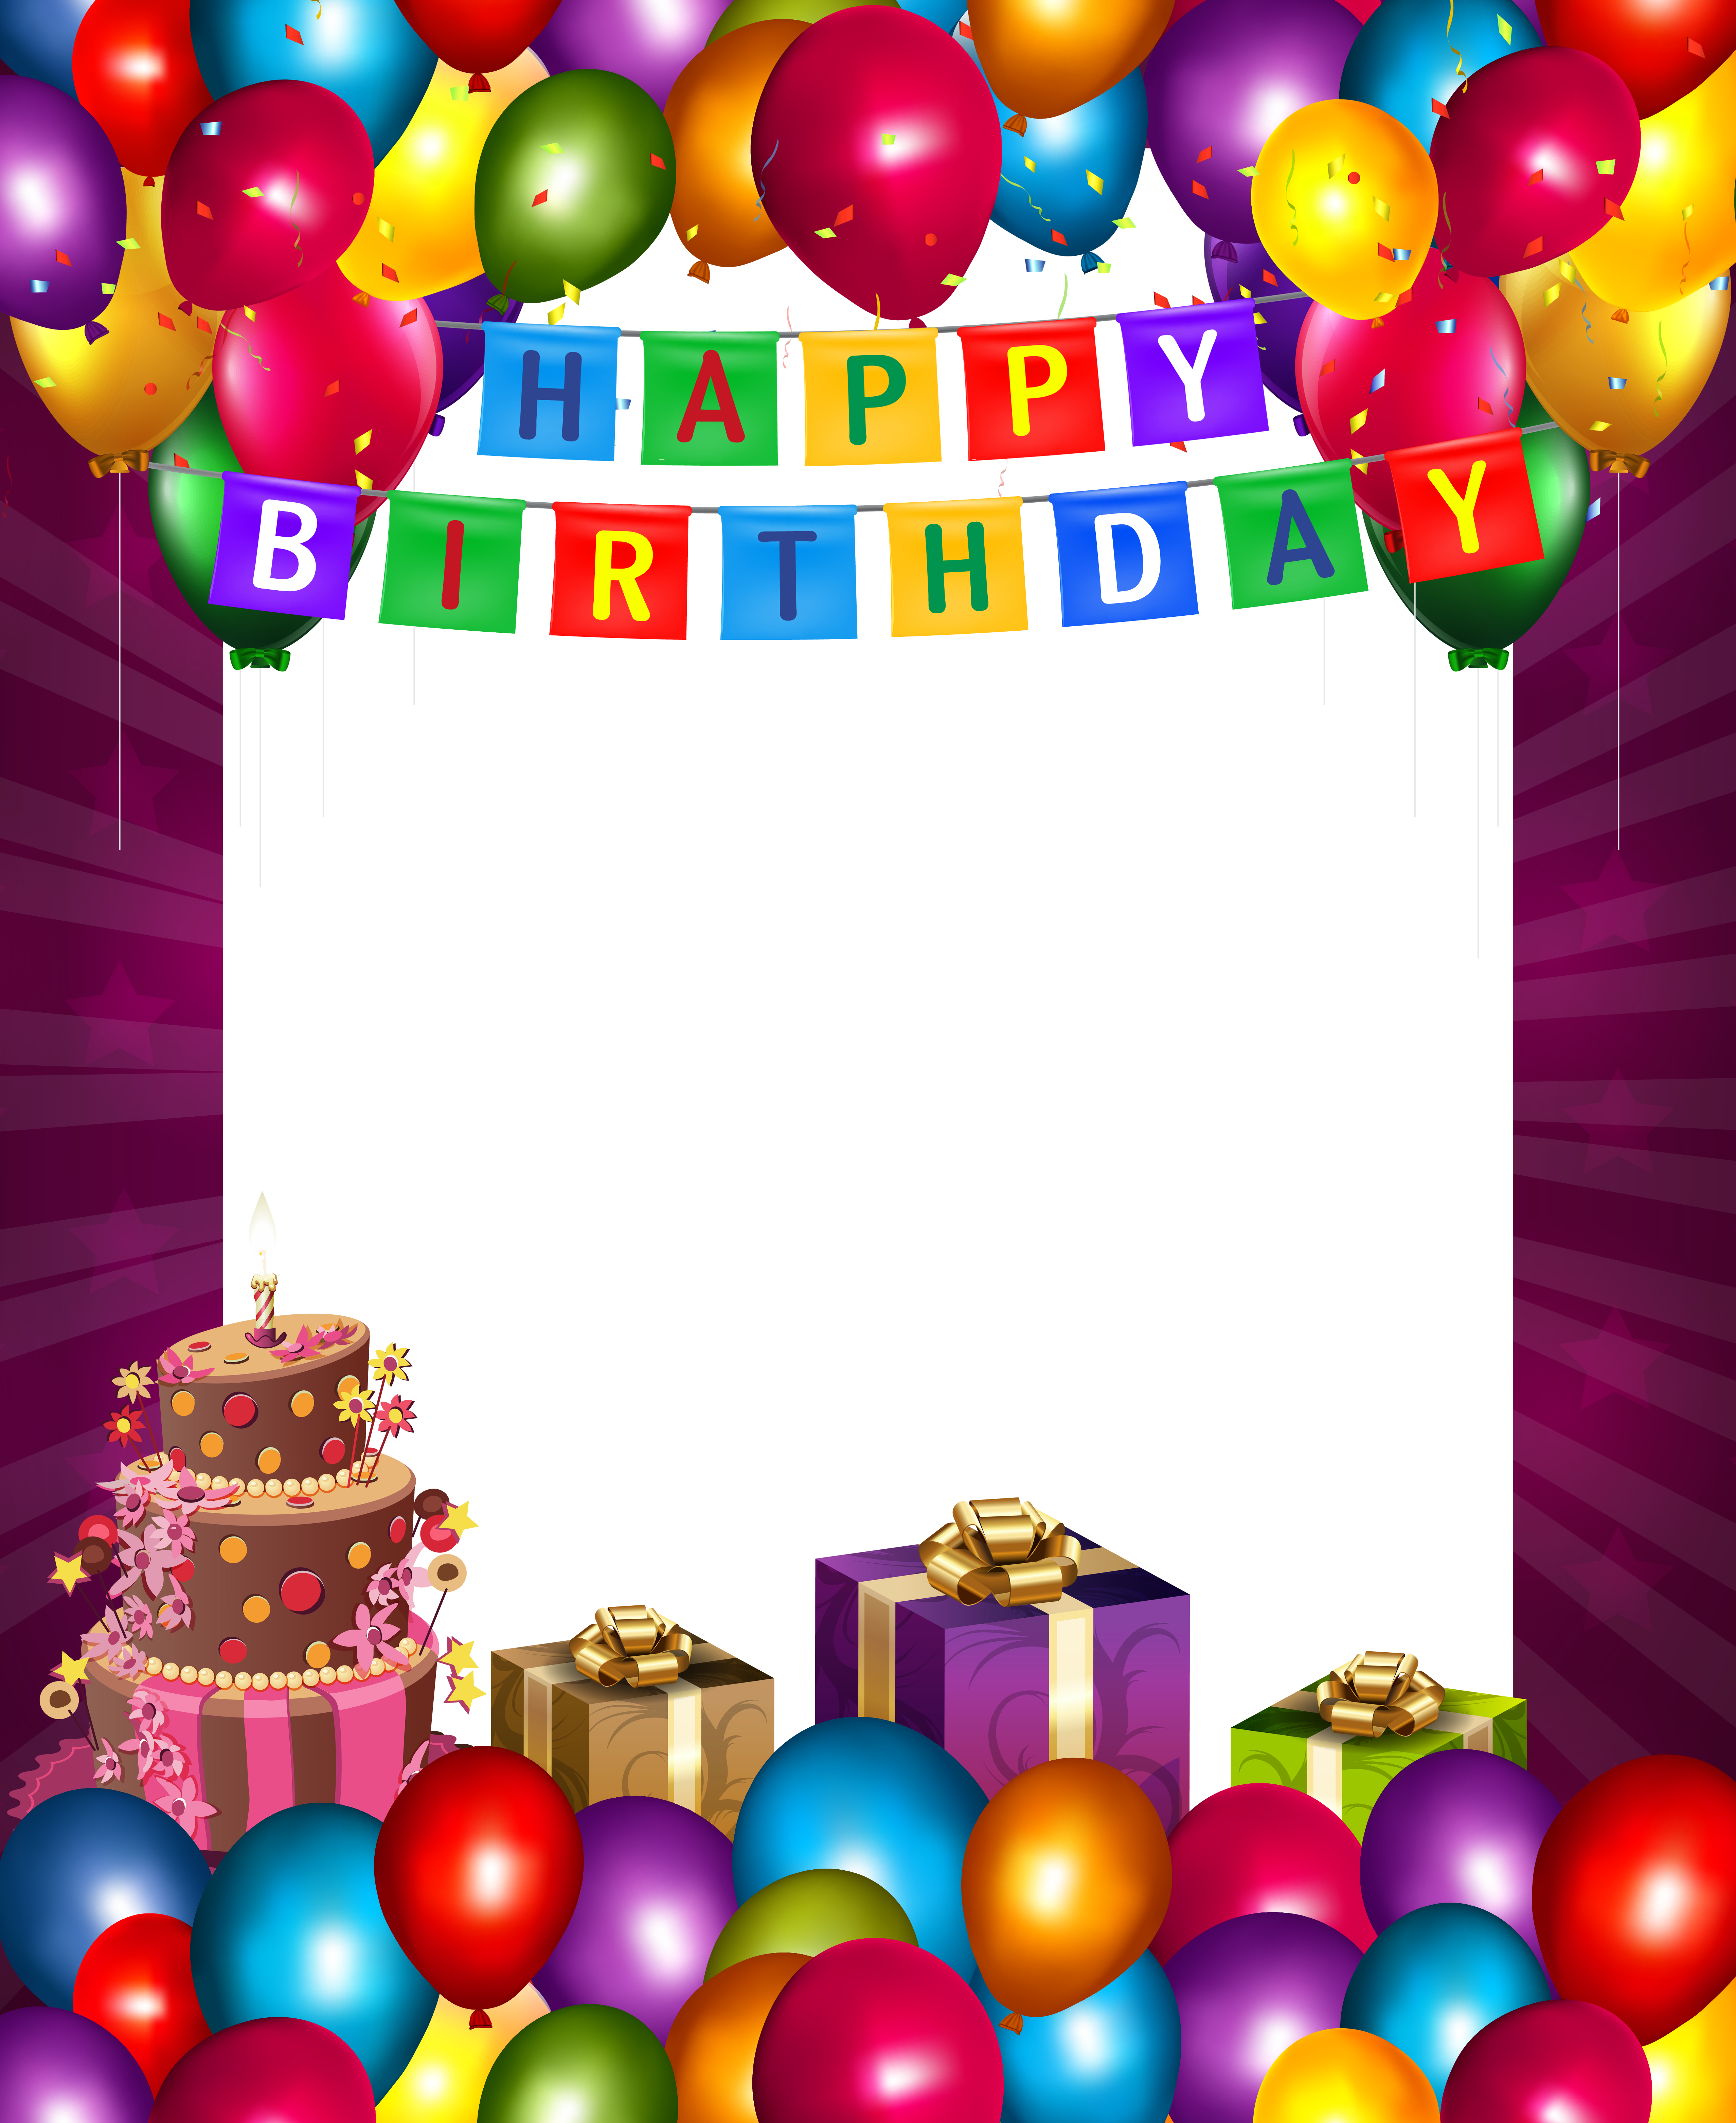 80th birthday borders and frames 80th birthday card - Happy Birthday With Balloons Transparent Png Frame